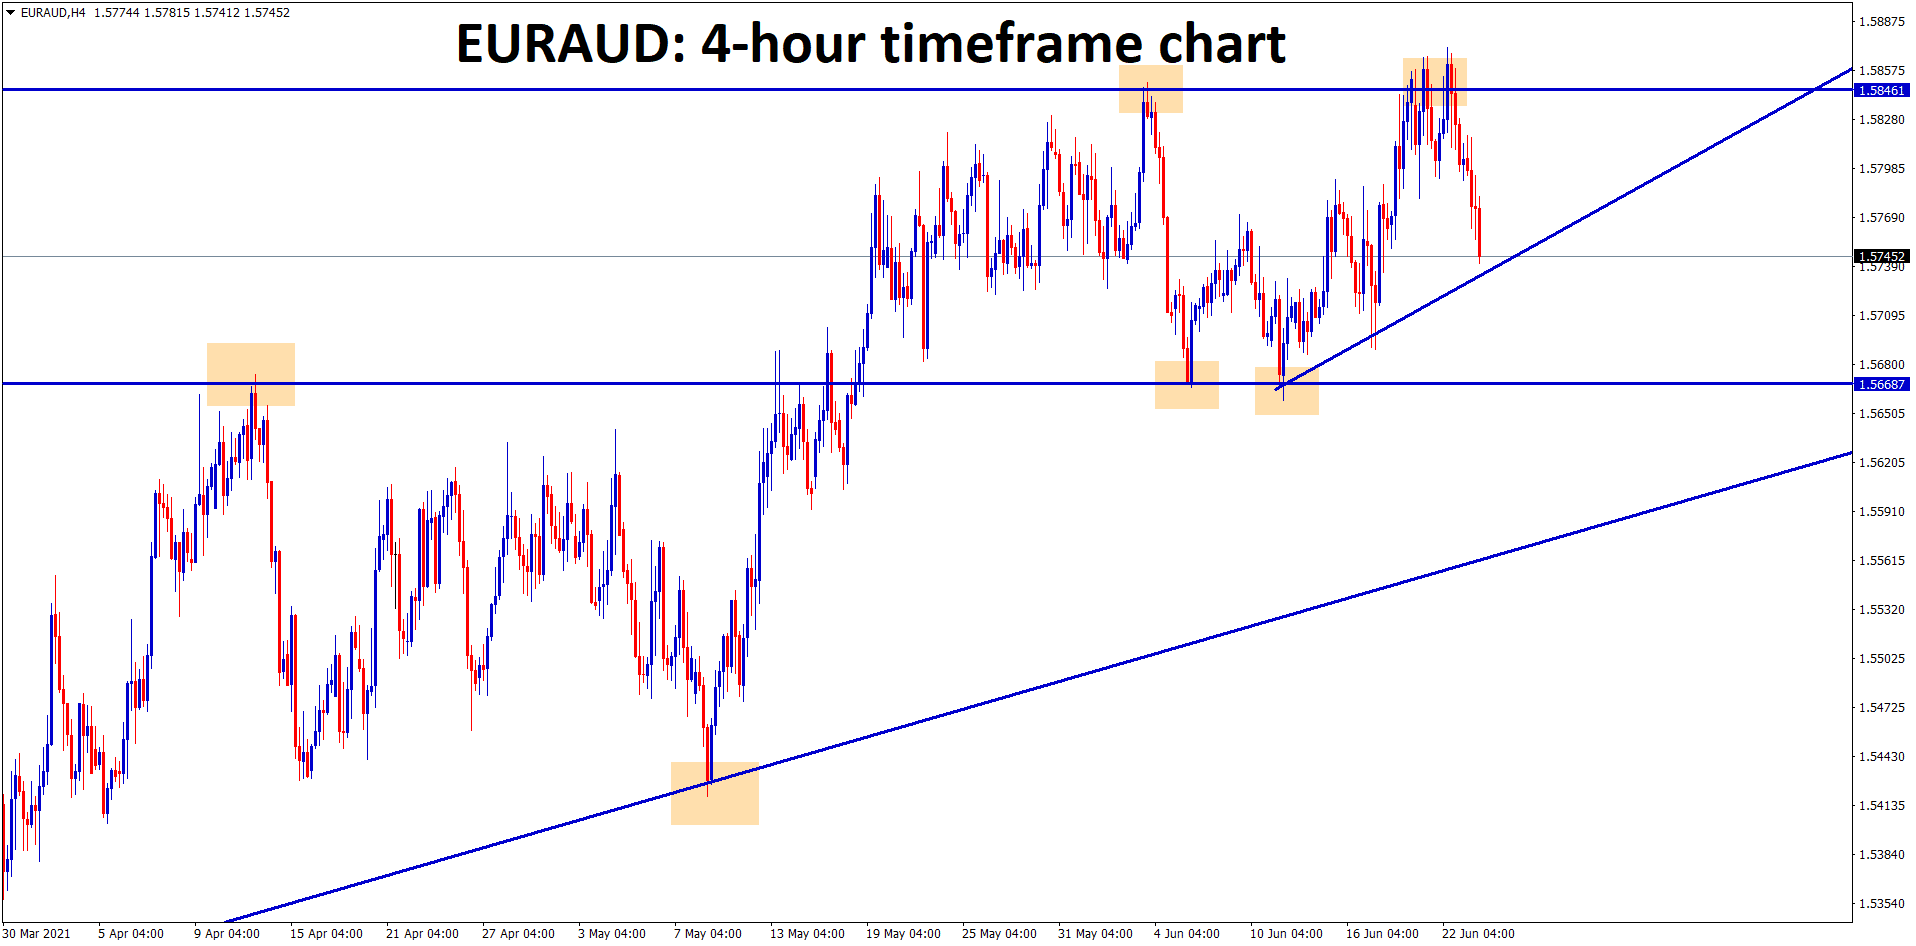 EURAUD is forming an another Ascending Triangle